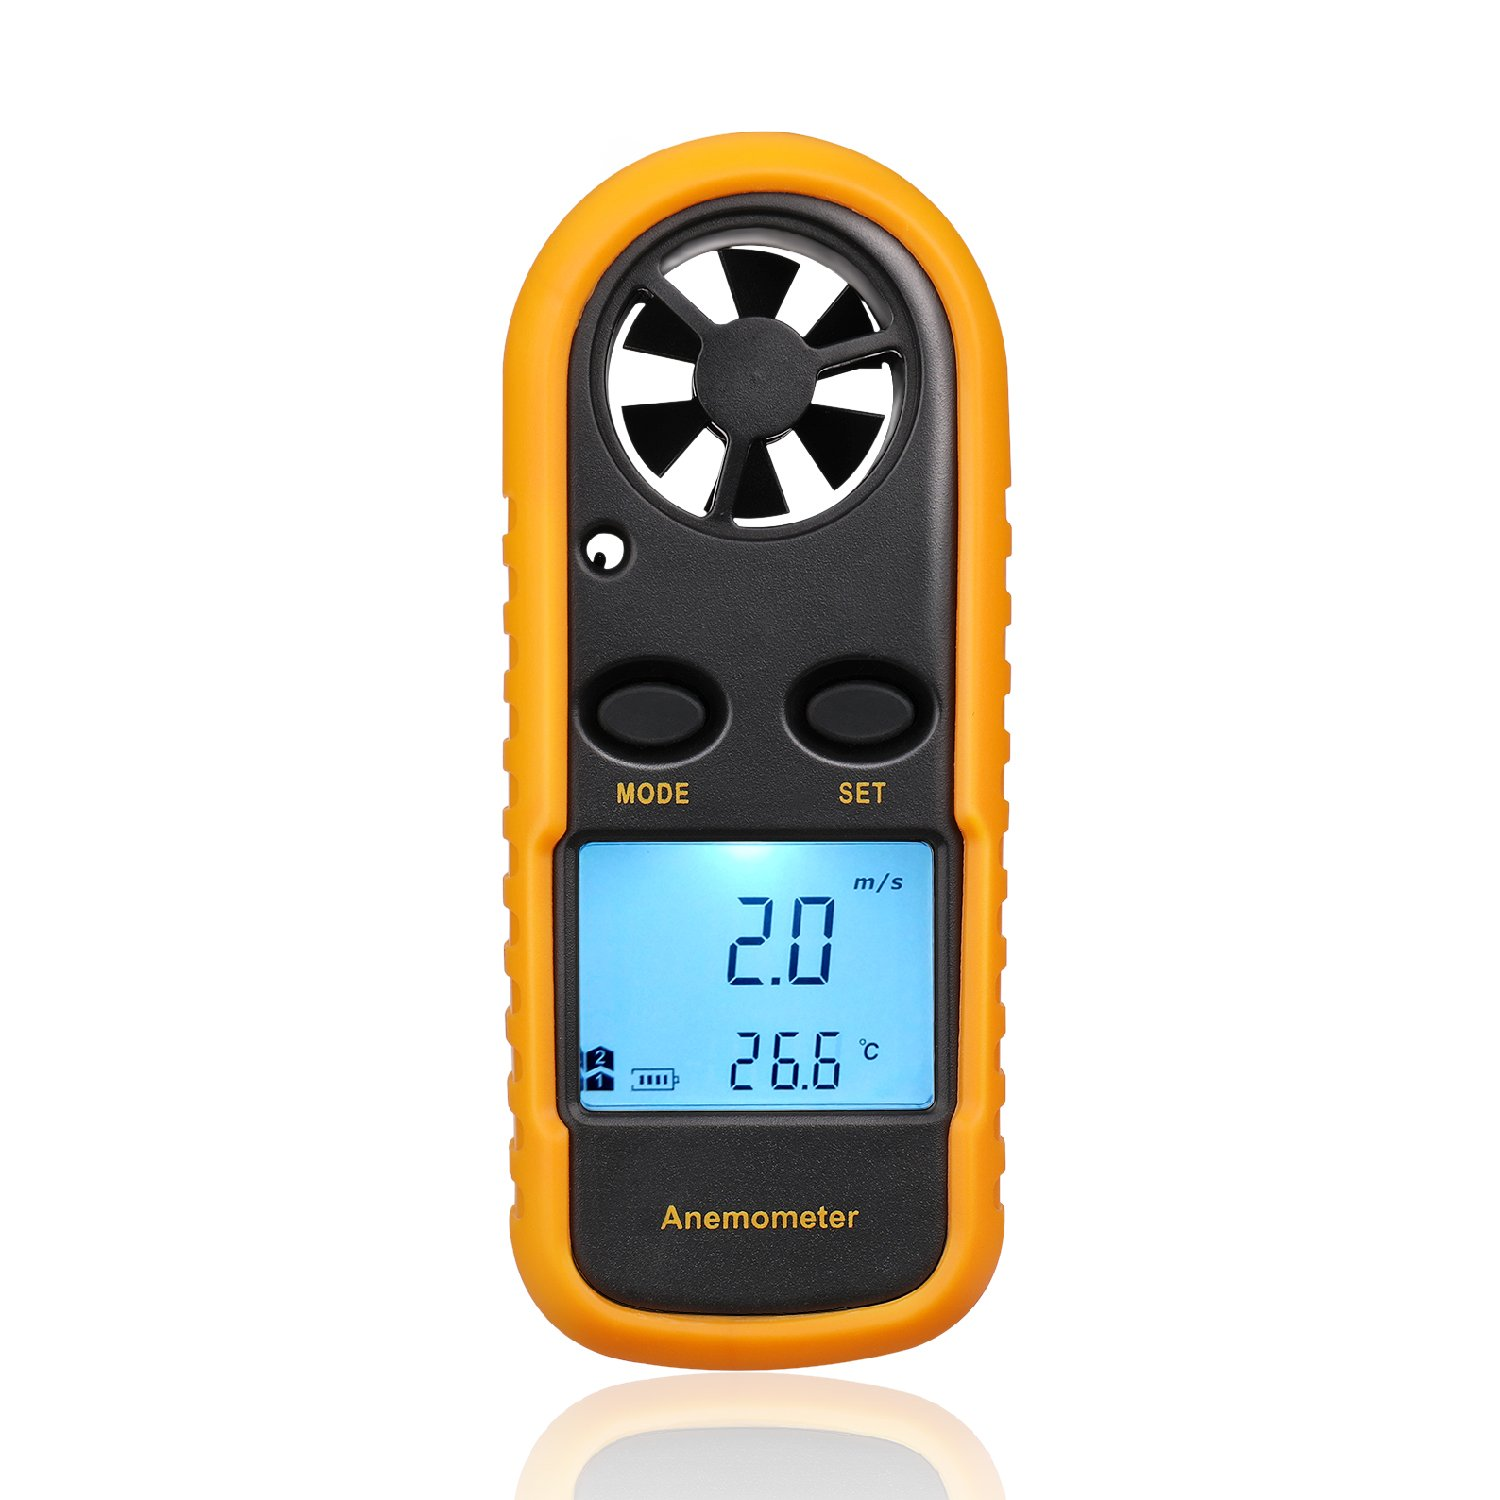 Flexzion Anemometer Wind Meter Gauge Digital Hand-Held Air Flow Velocity Speed Measuring Device w/MAX/MIN Wind Chill Temperature Thermometer LCD Backlight for Shooting Kite Flying Sailing Fishing